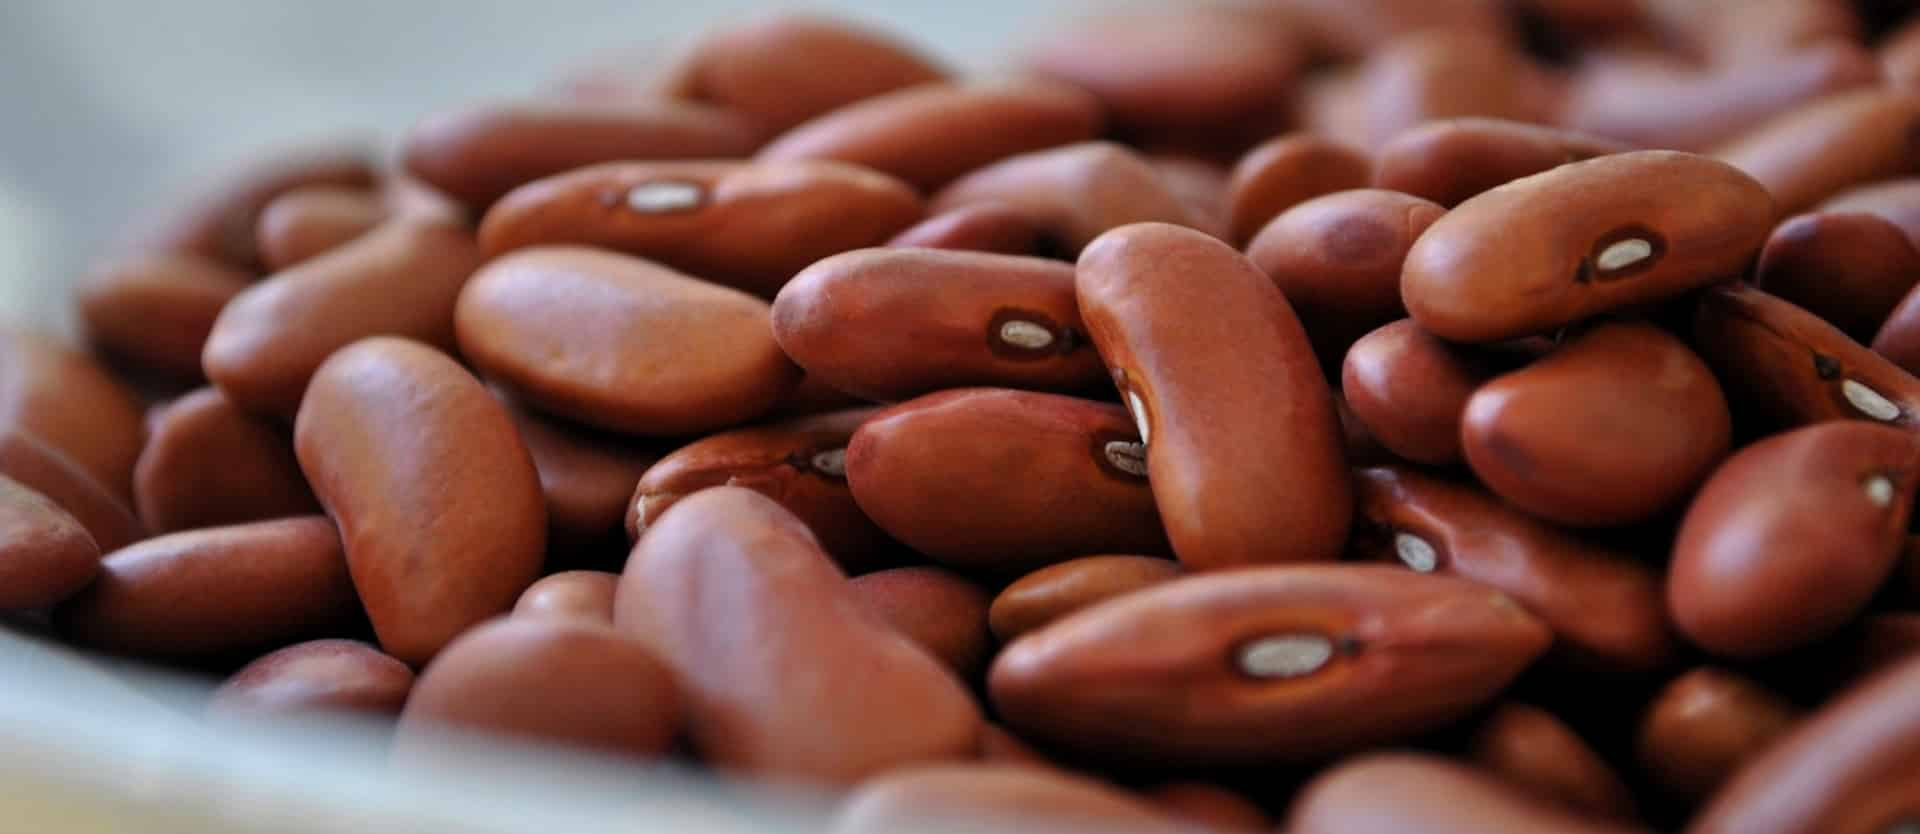 The meaning and symbolism of the word  Bean